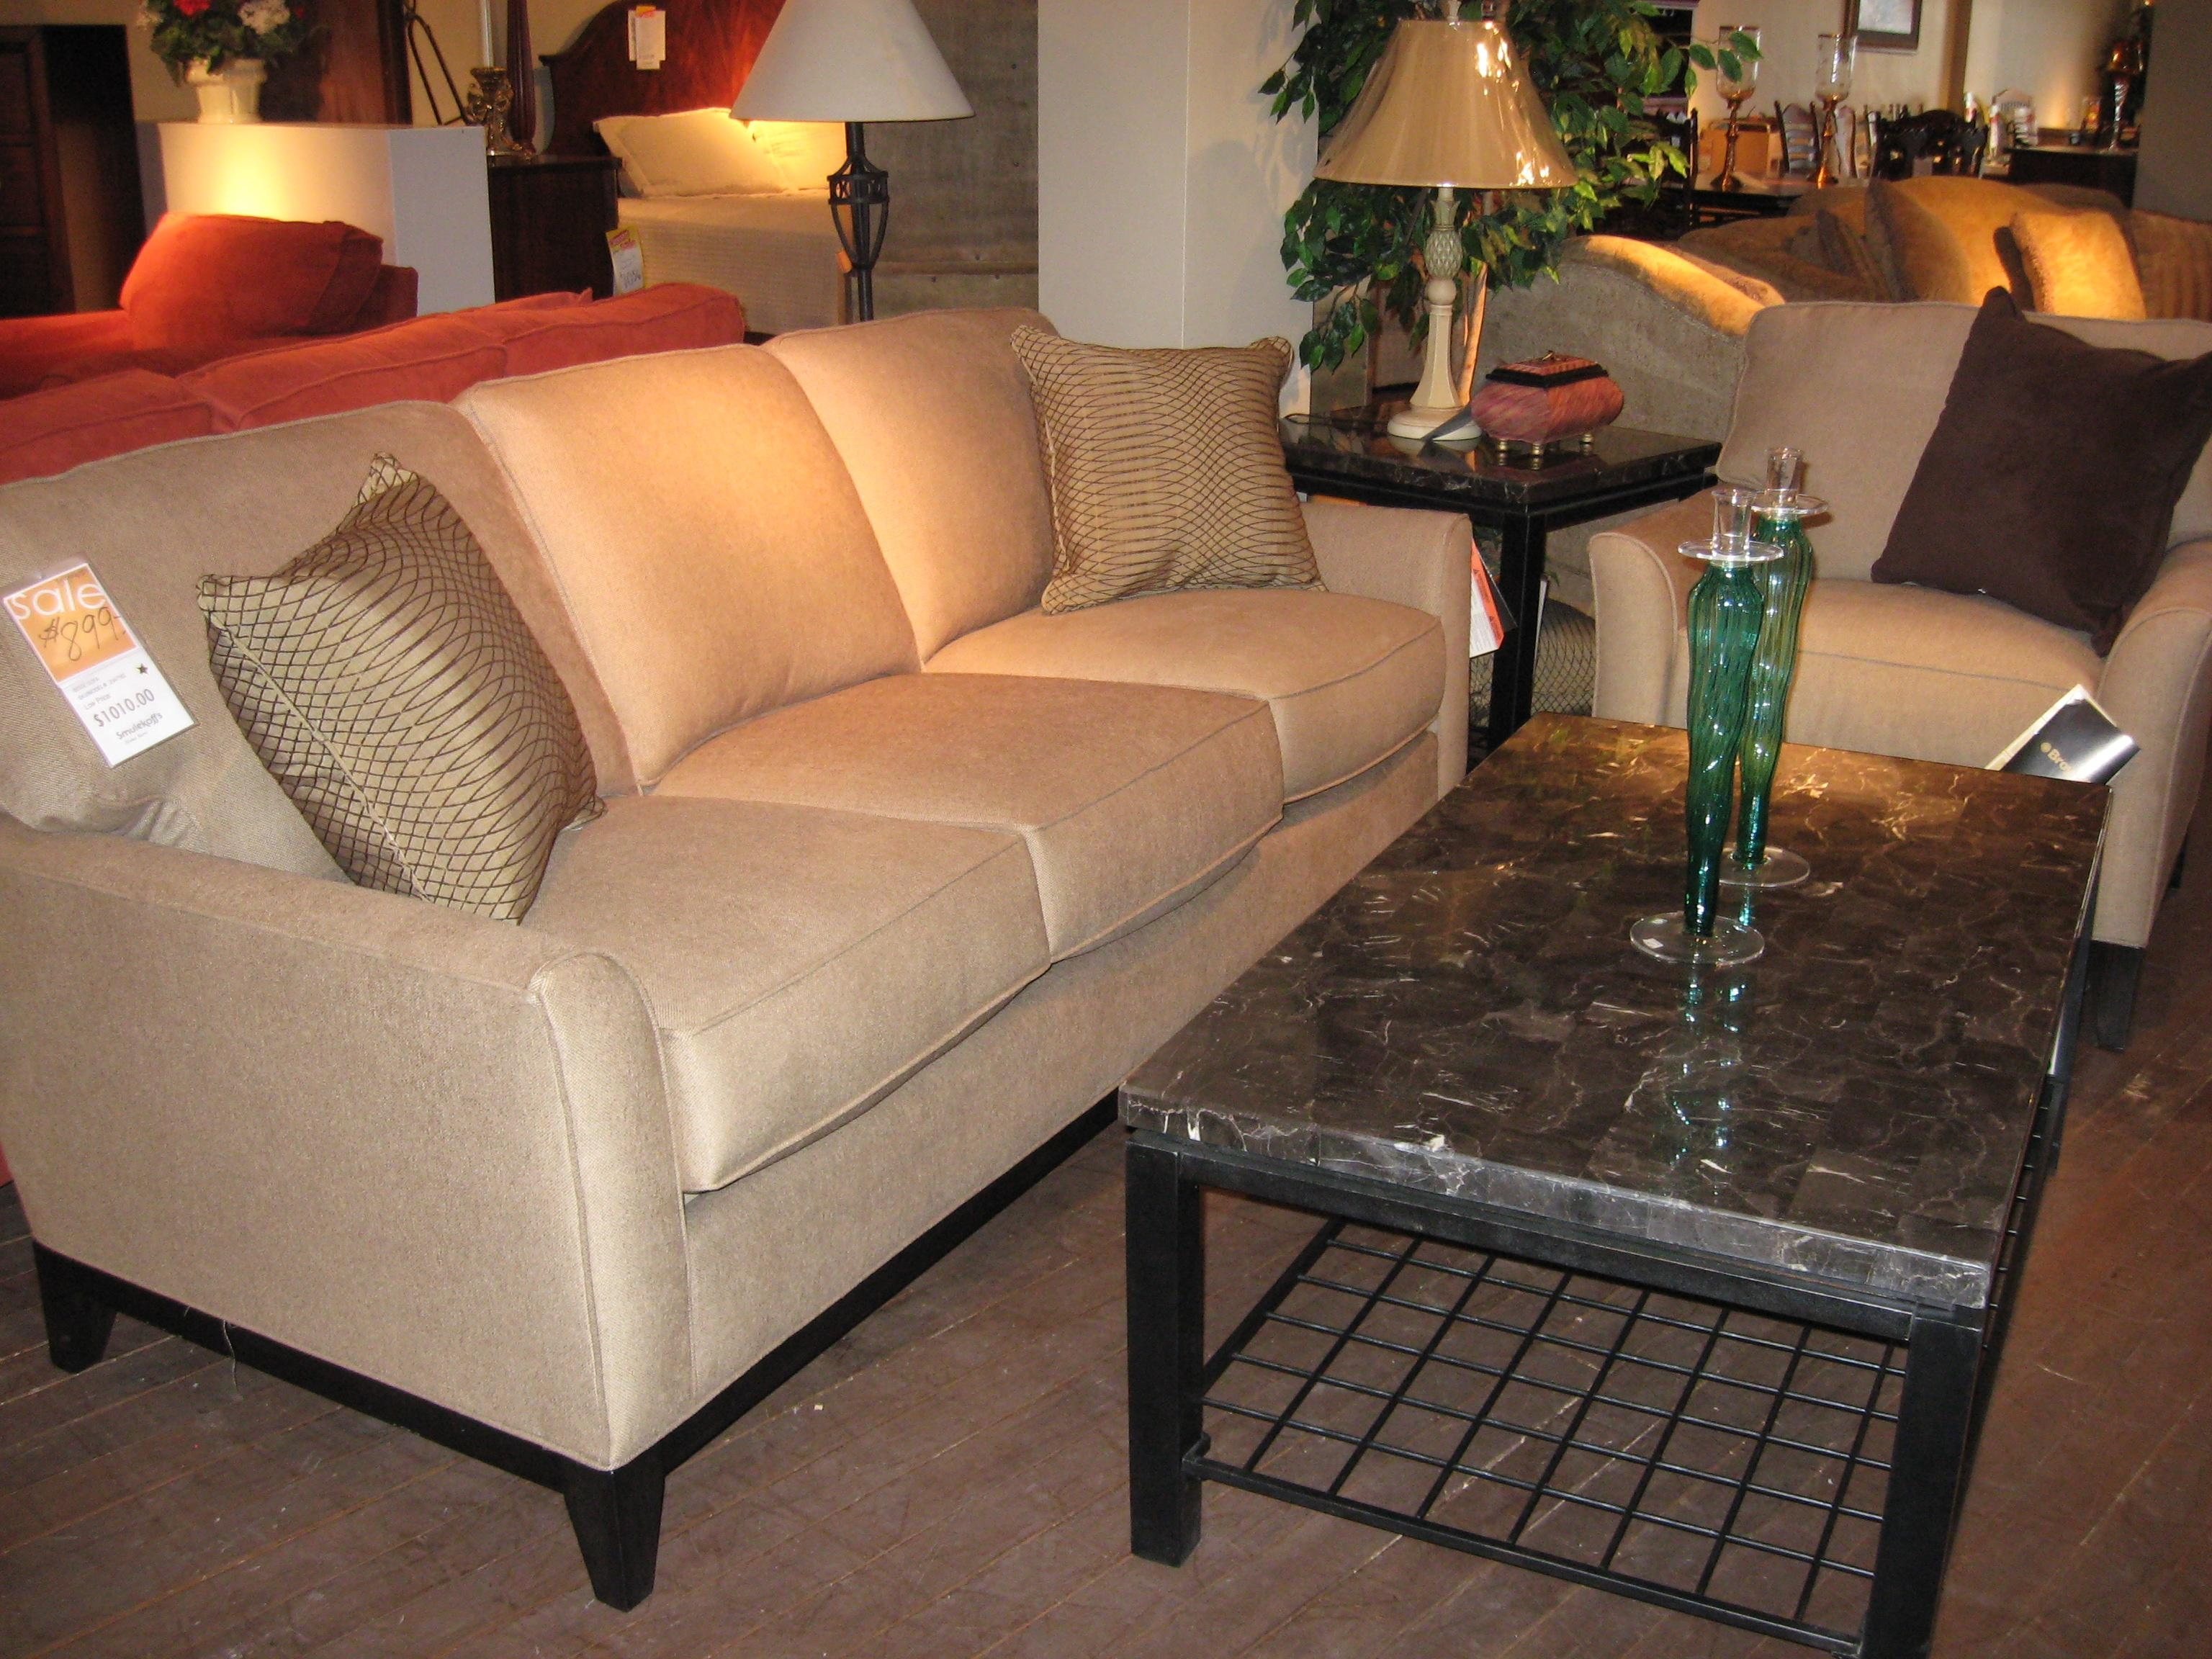 Broyhill – Smulekoff's Home Store Throughout Broyhill Perspectives Sofas (View 4 of 20)